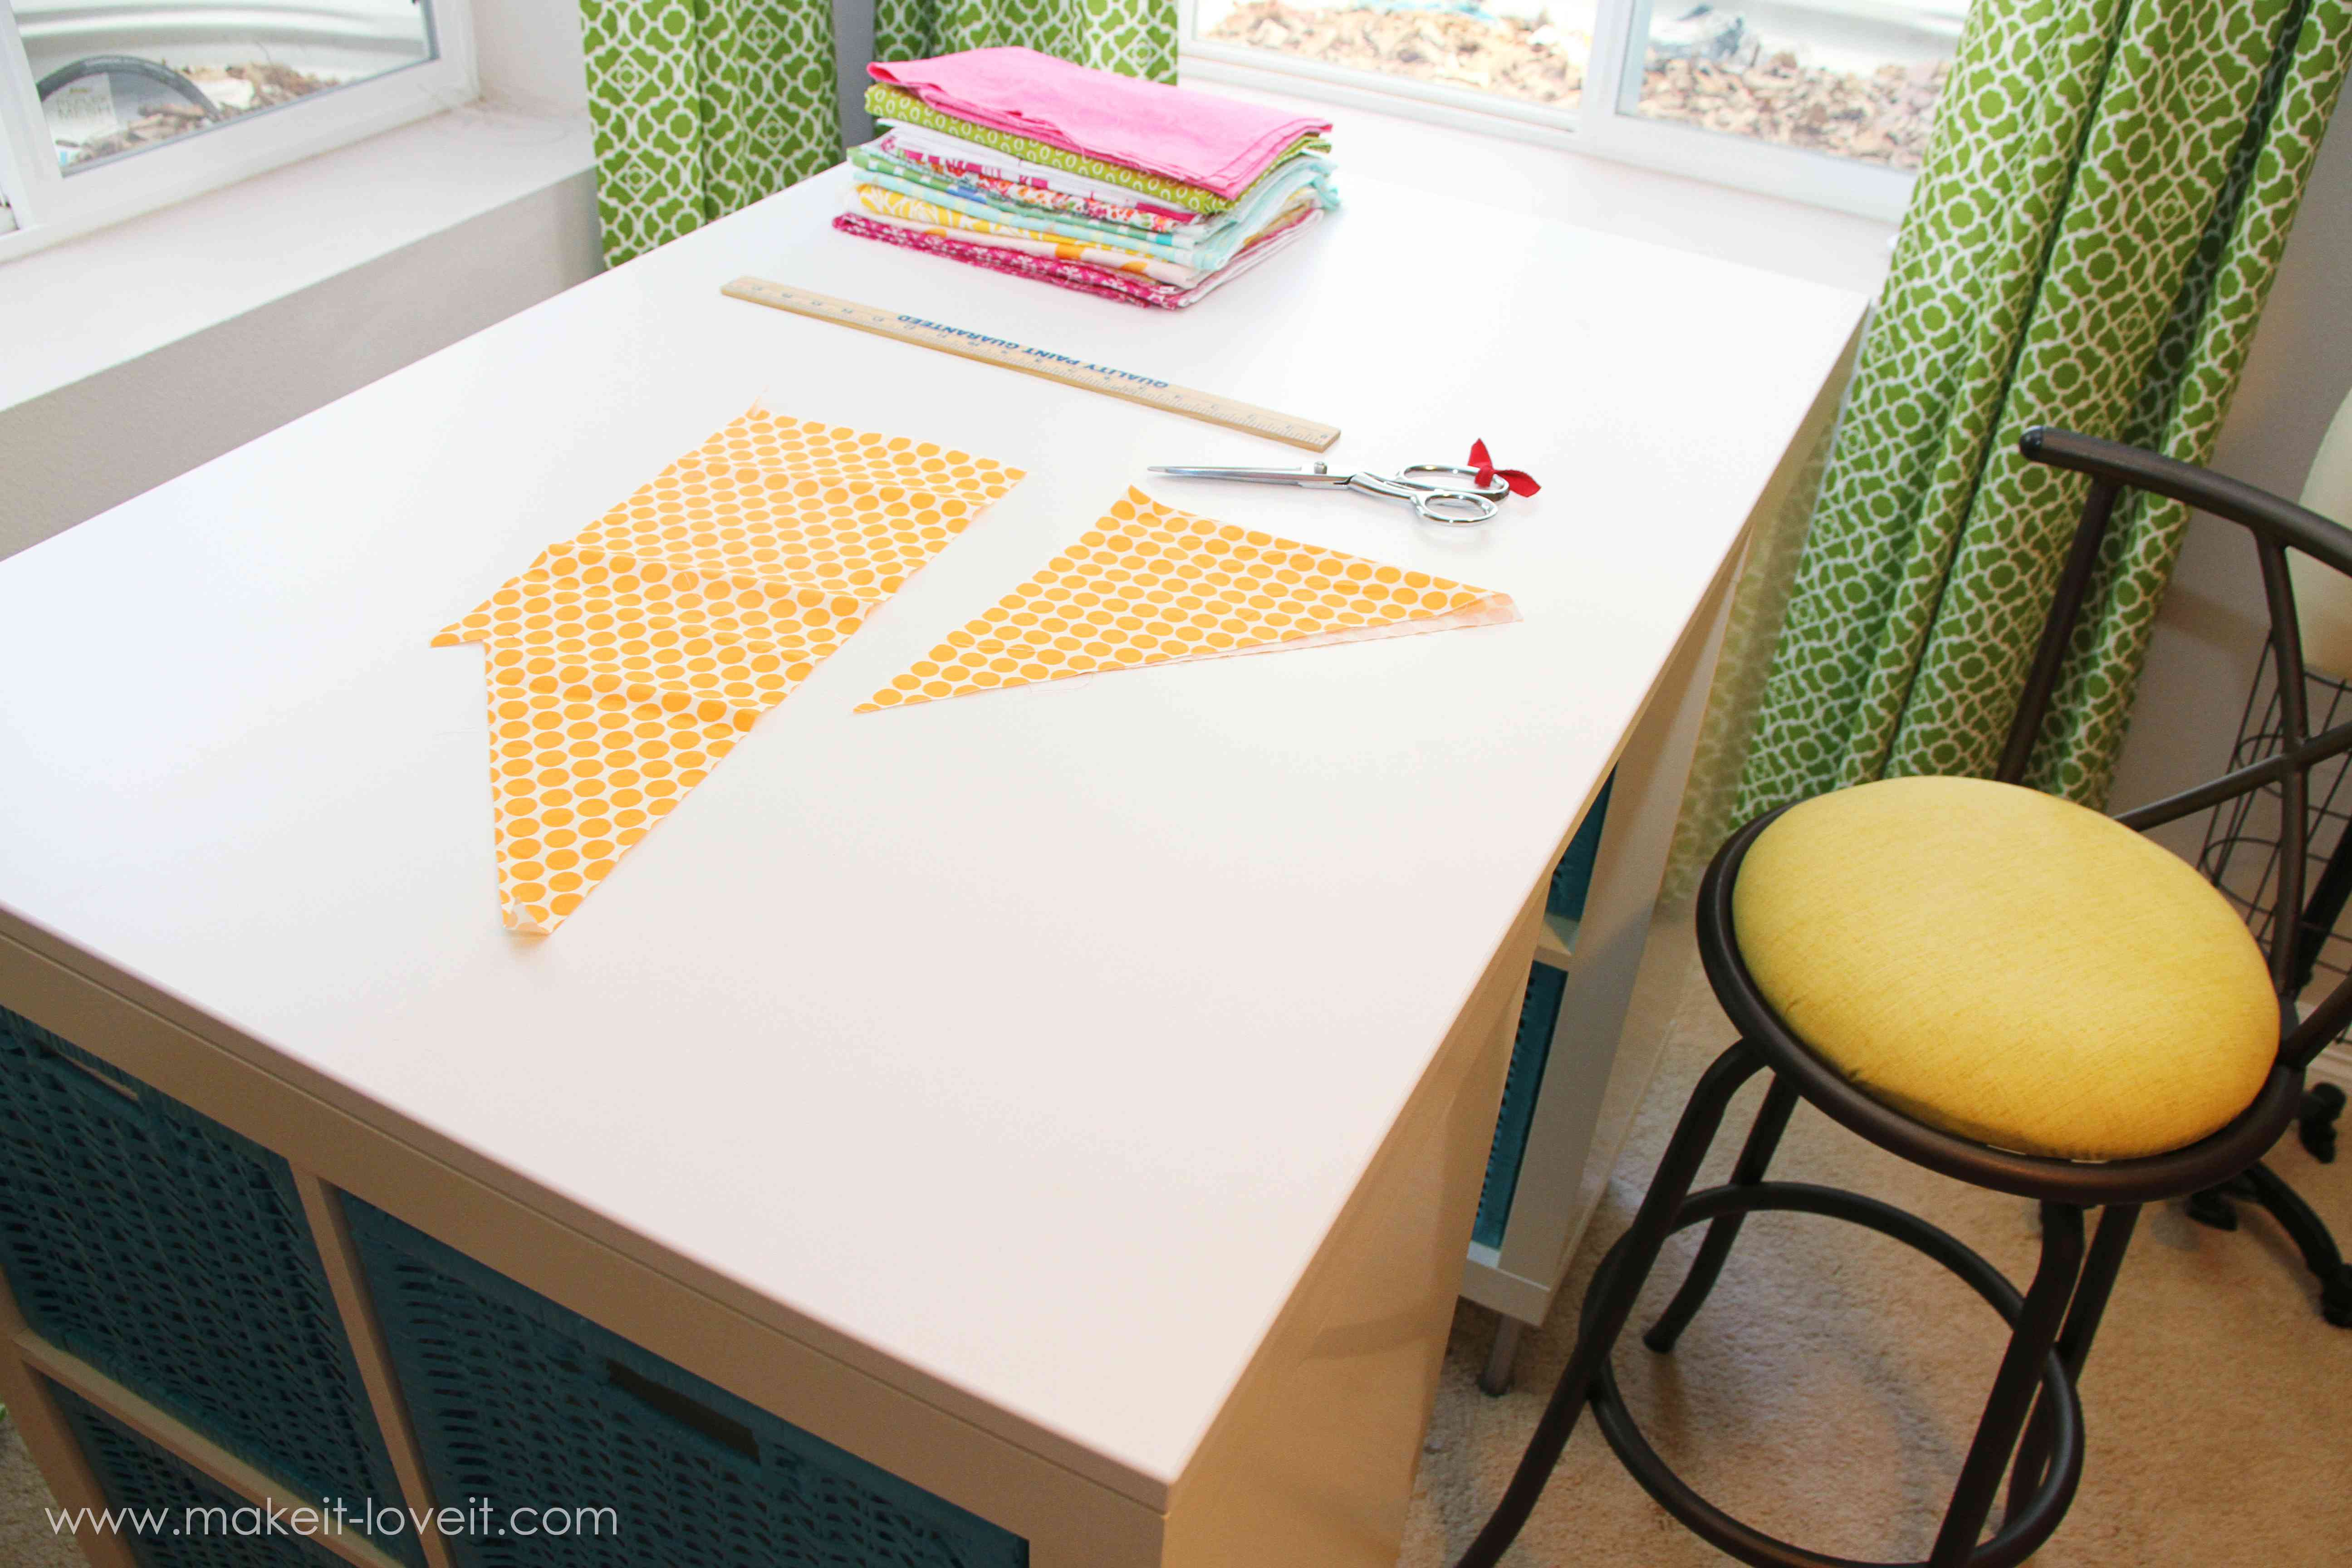 A top view of a craft table with fabric on it